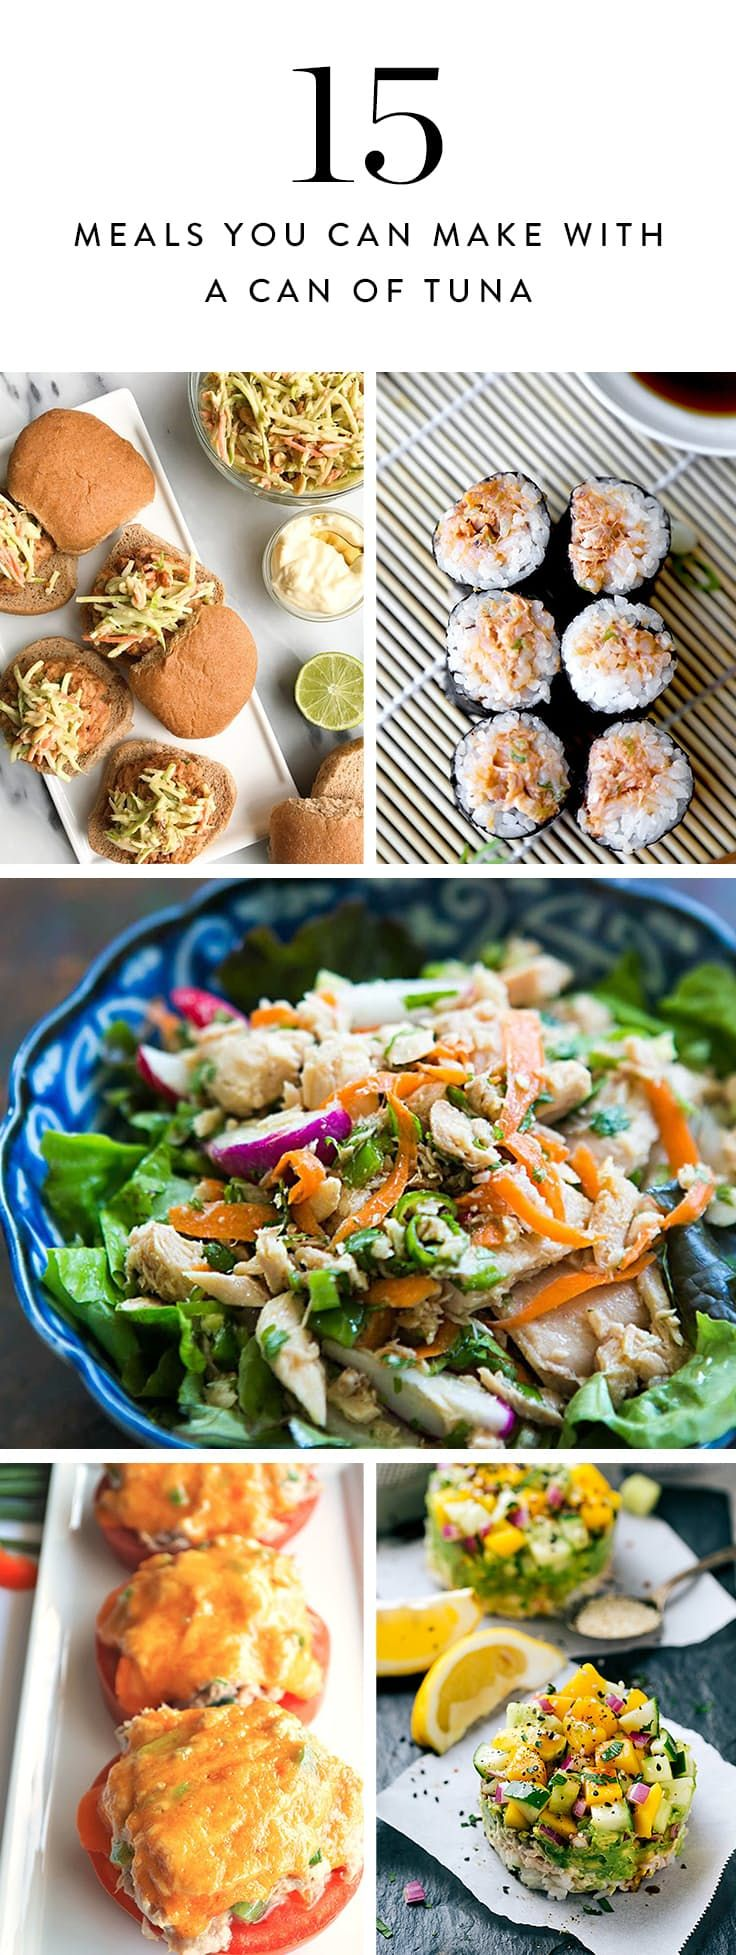 15 Surprisingly Awesome Meals You Can Make with a Can of Tuna via @PureWow